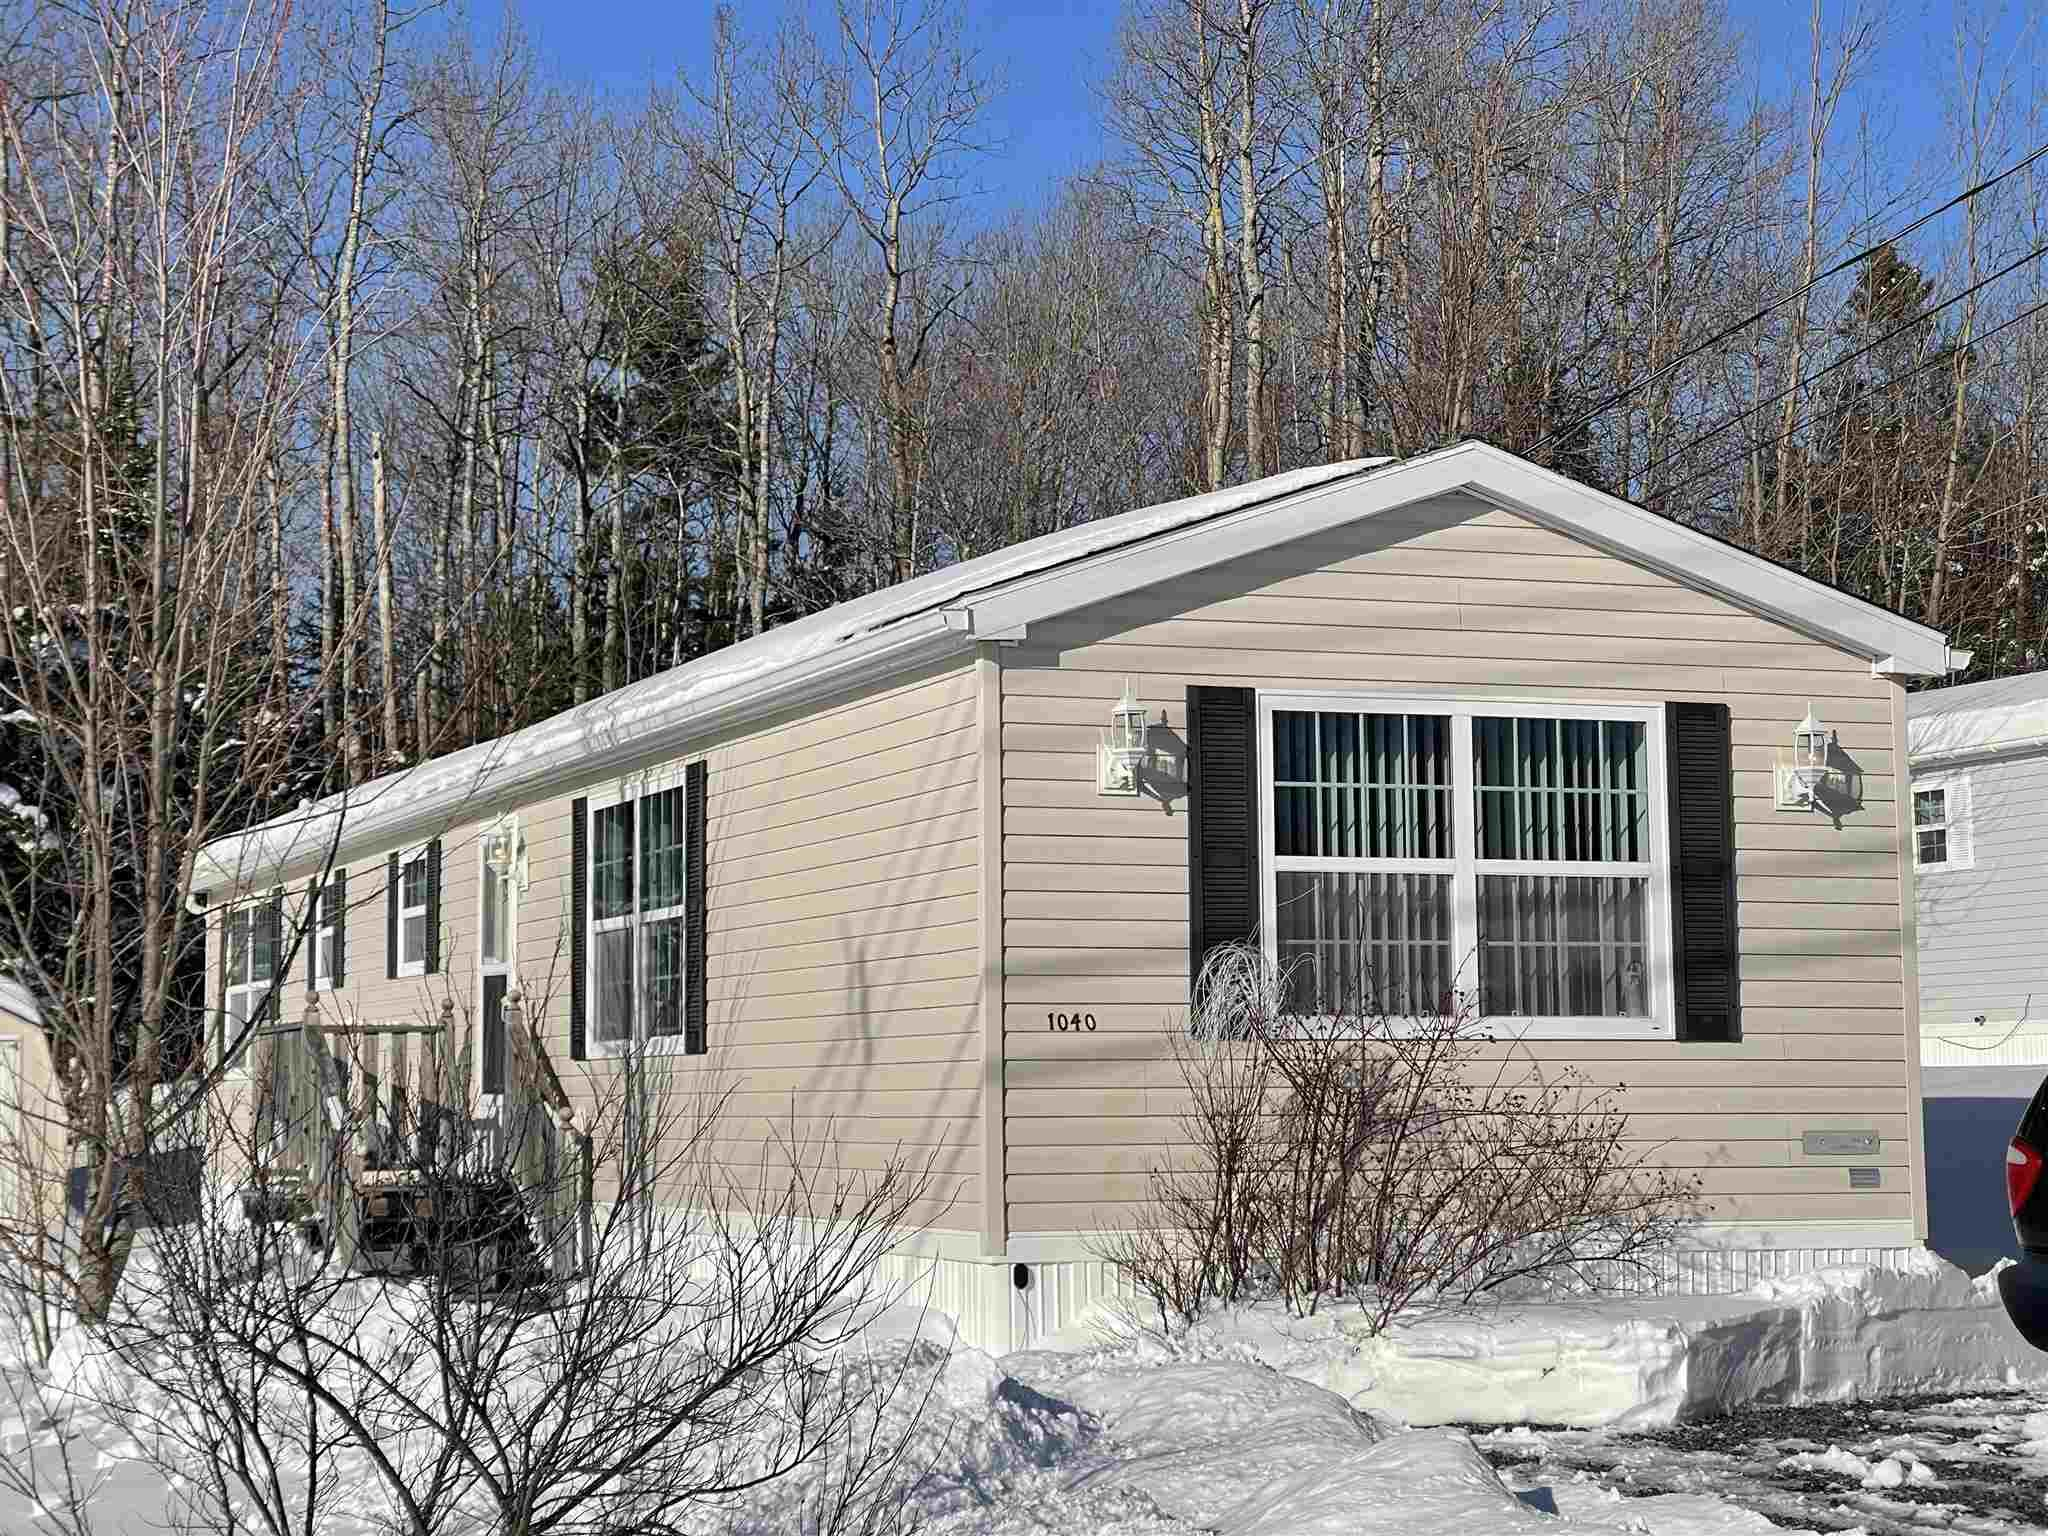 Main Photo: 1040 Park Lane in Westville: 107-Trenton,Westville,Pictou Residential for sale (Northern Region)  : MLS®# 202102235